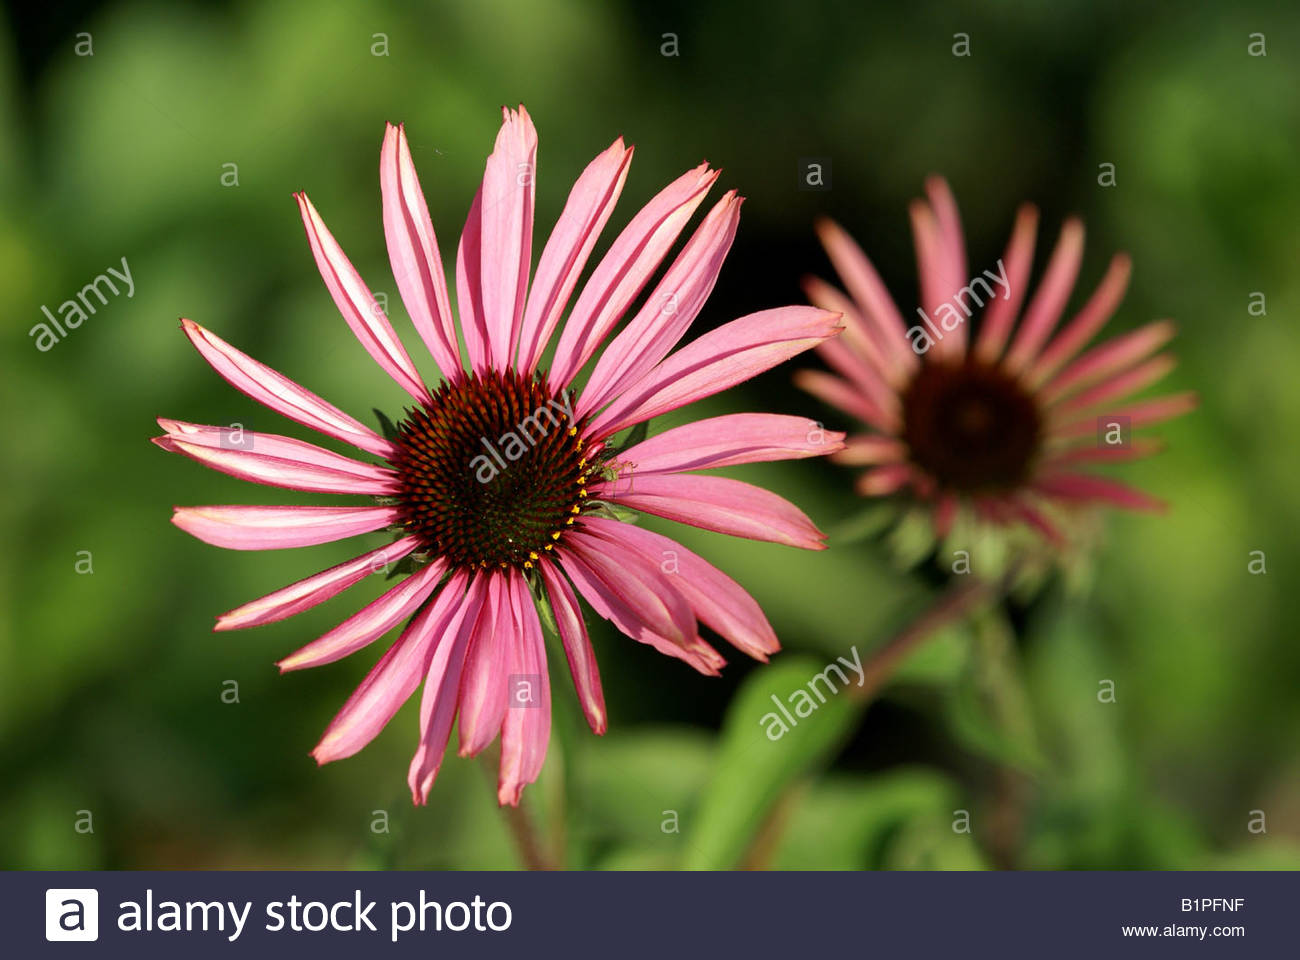 Echinacea purpurea also named Eastern purple coneflower - Stock Image